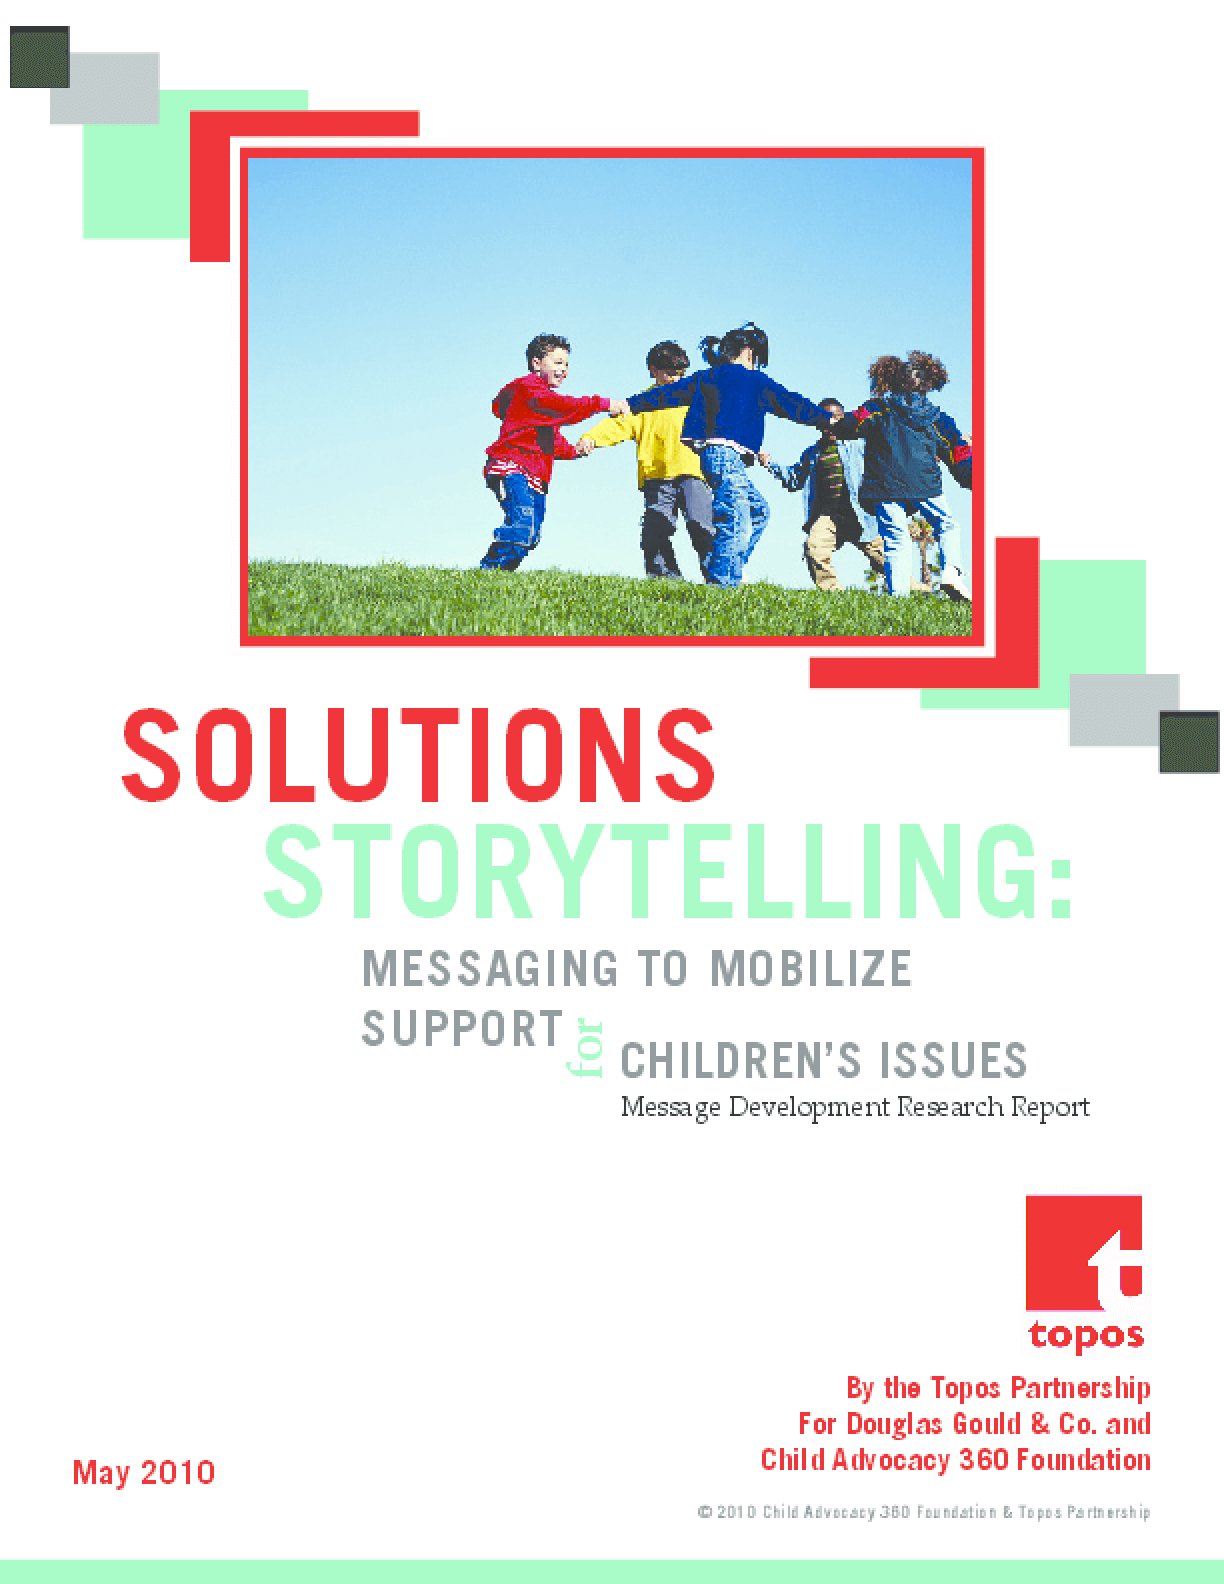 Solutions Storytelling: Messaging to Mobilize Support for Children's Issues